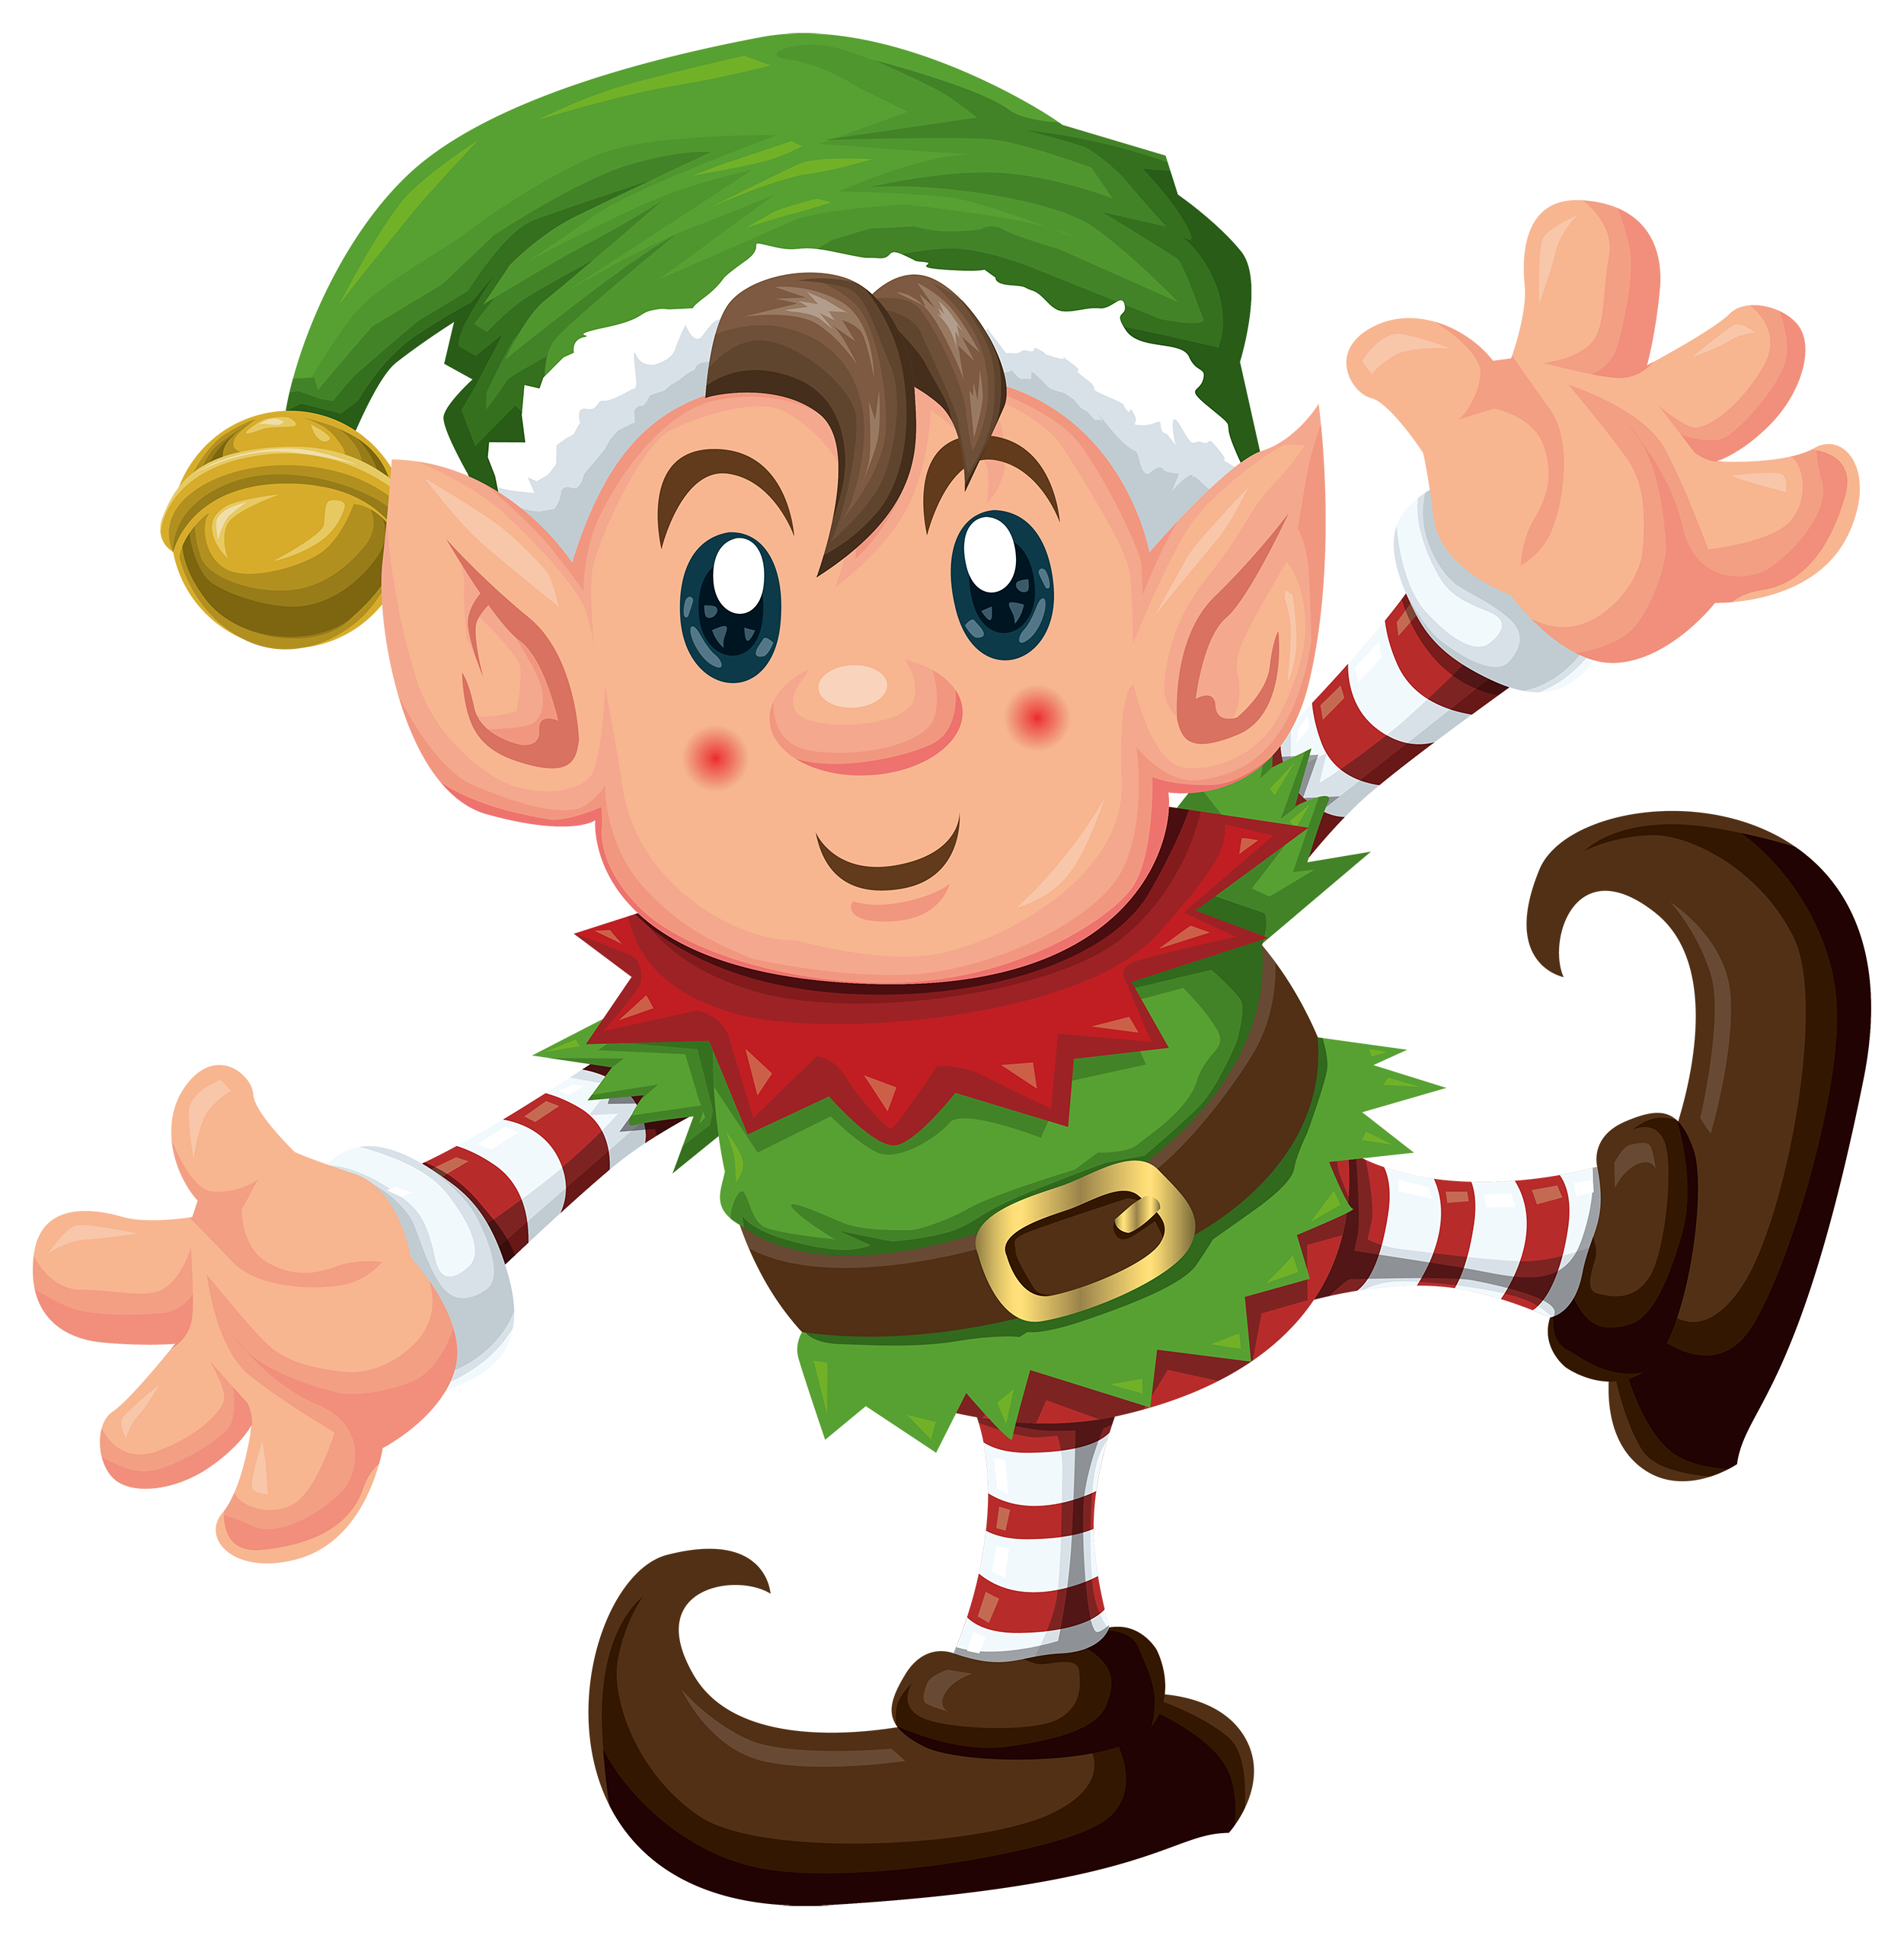 Elves clipart. Cute elf png pinterest